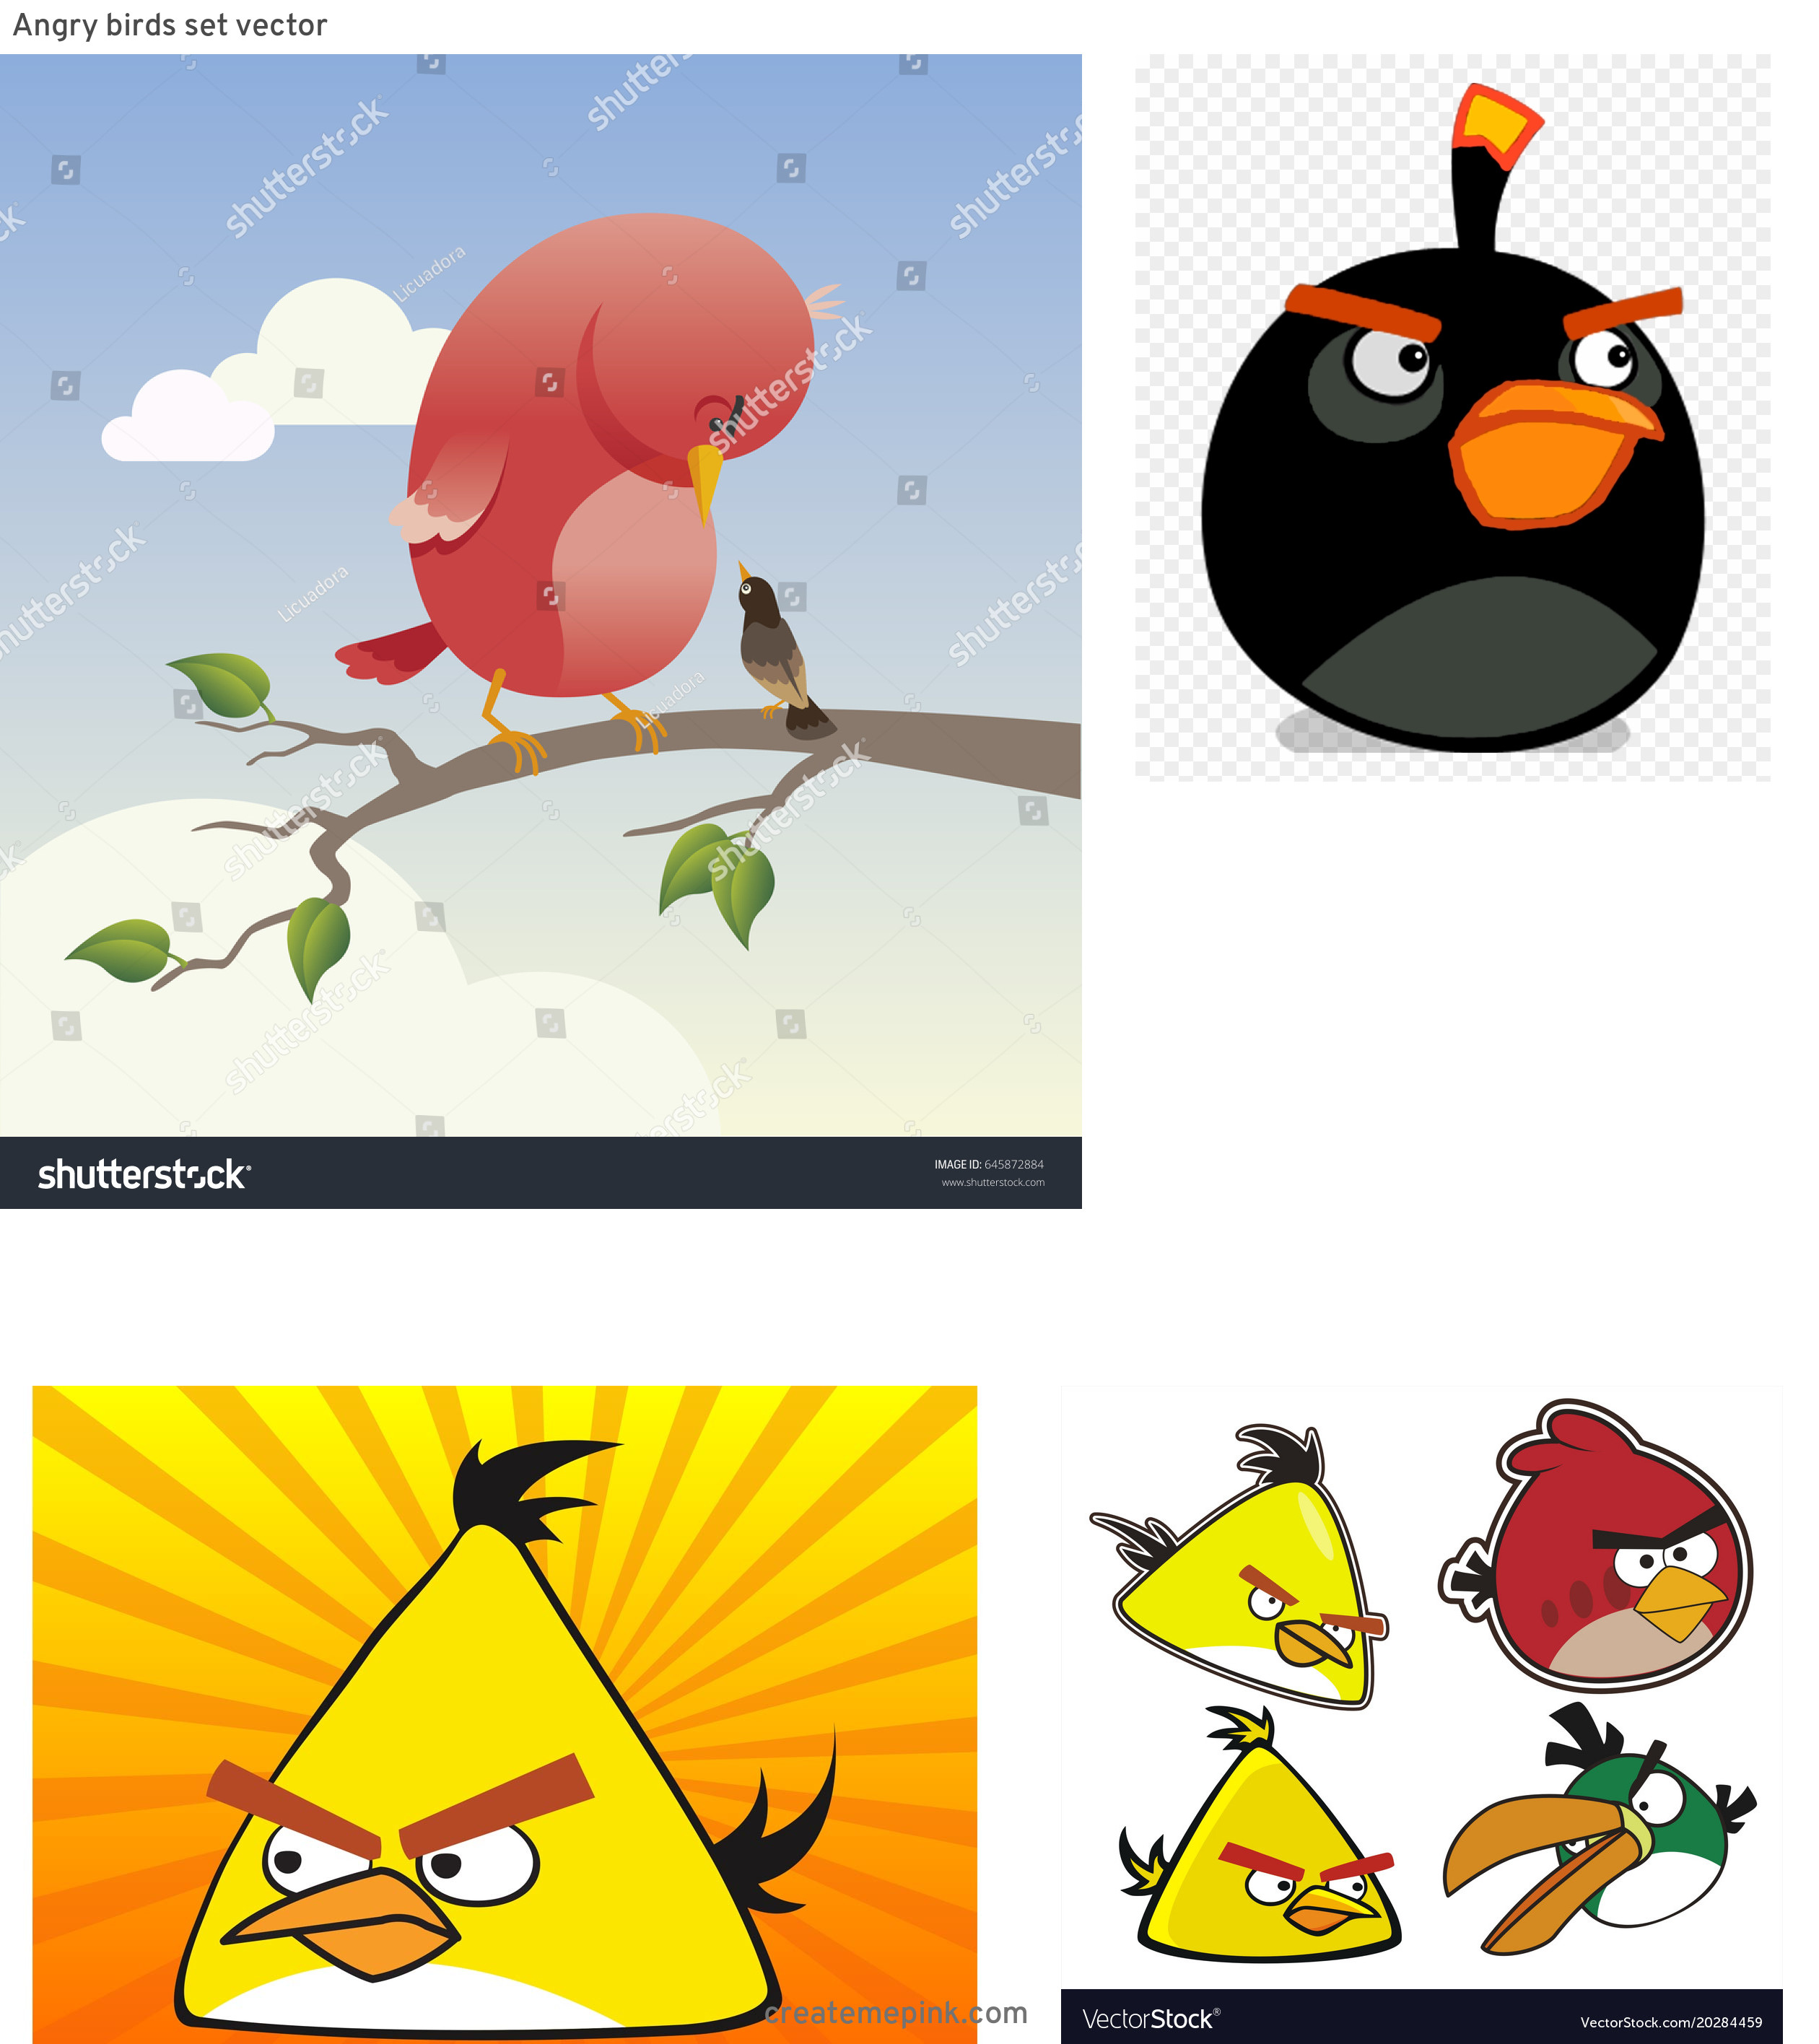 Red Angry Birds Vector: Angry Birds Set Vector